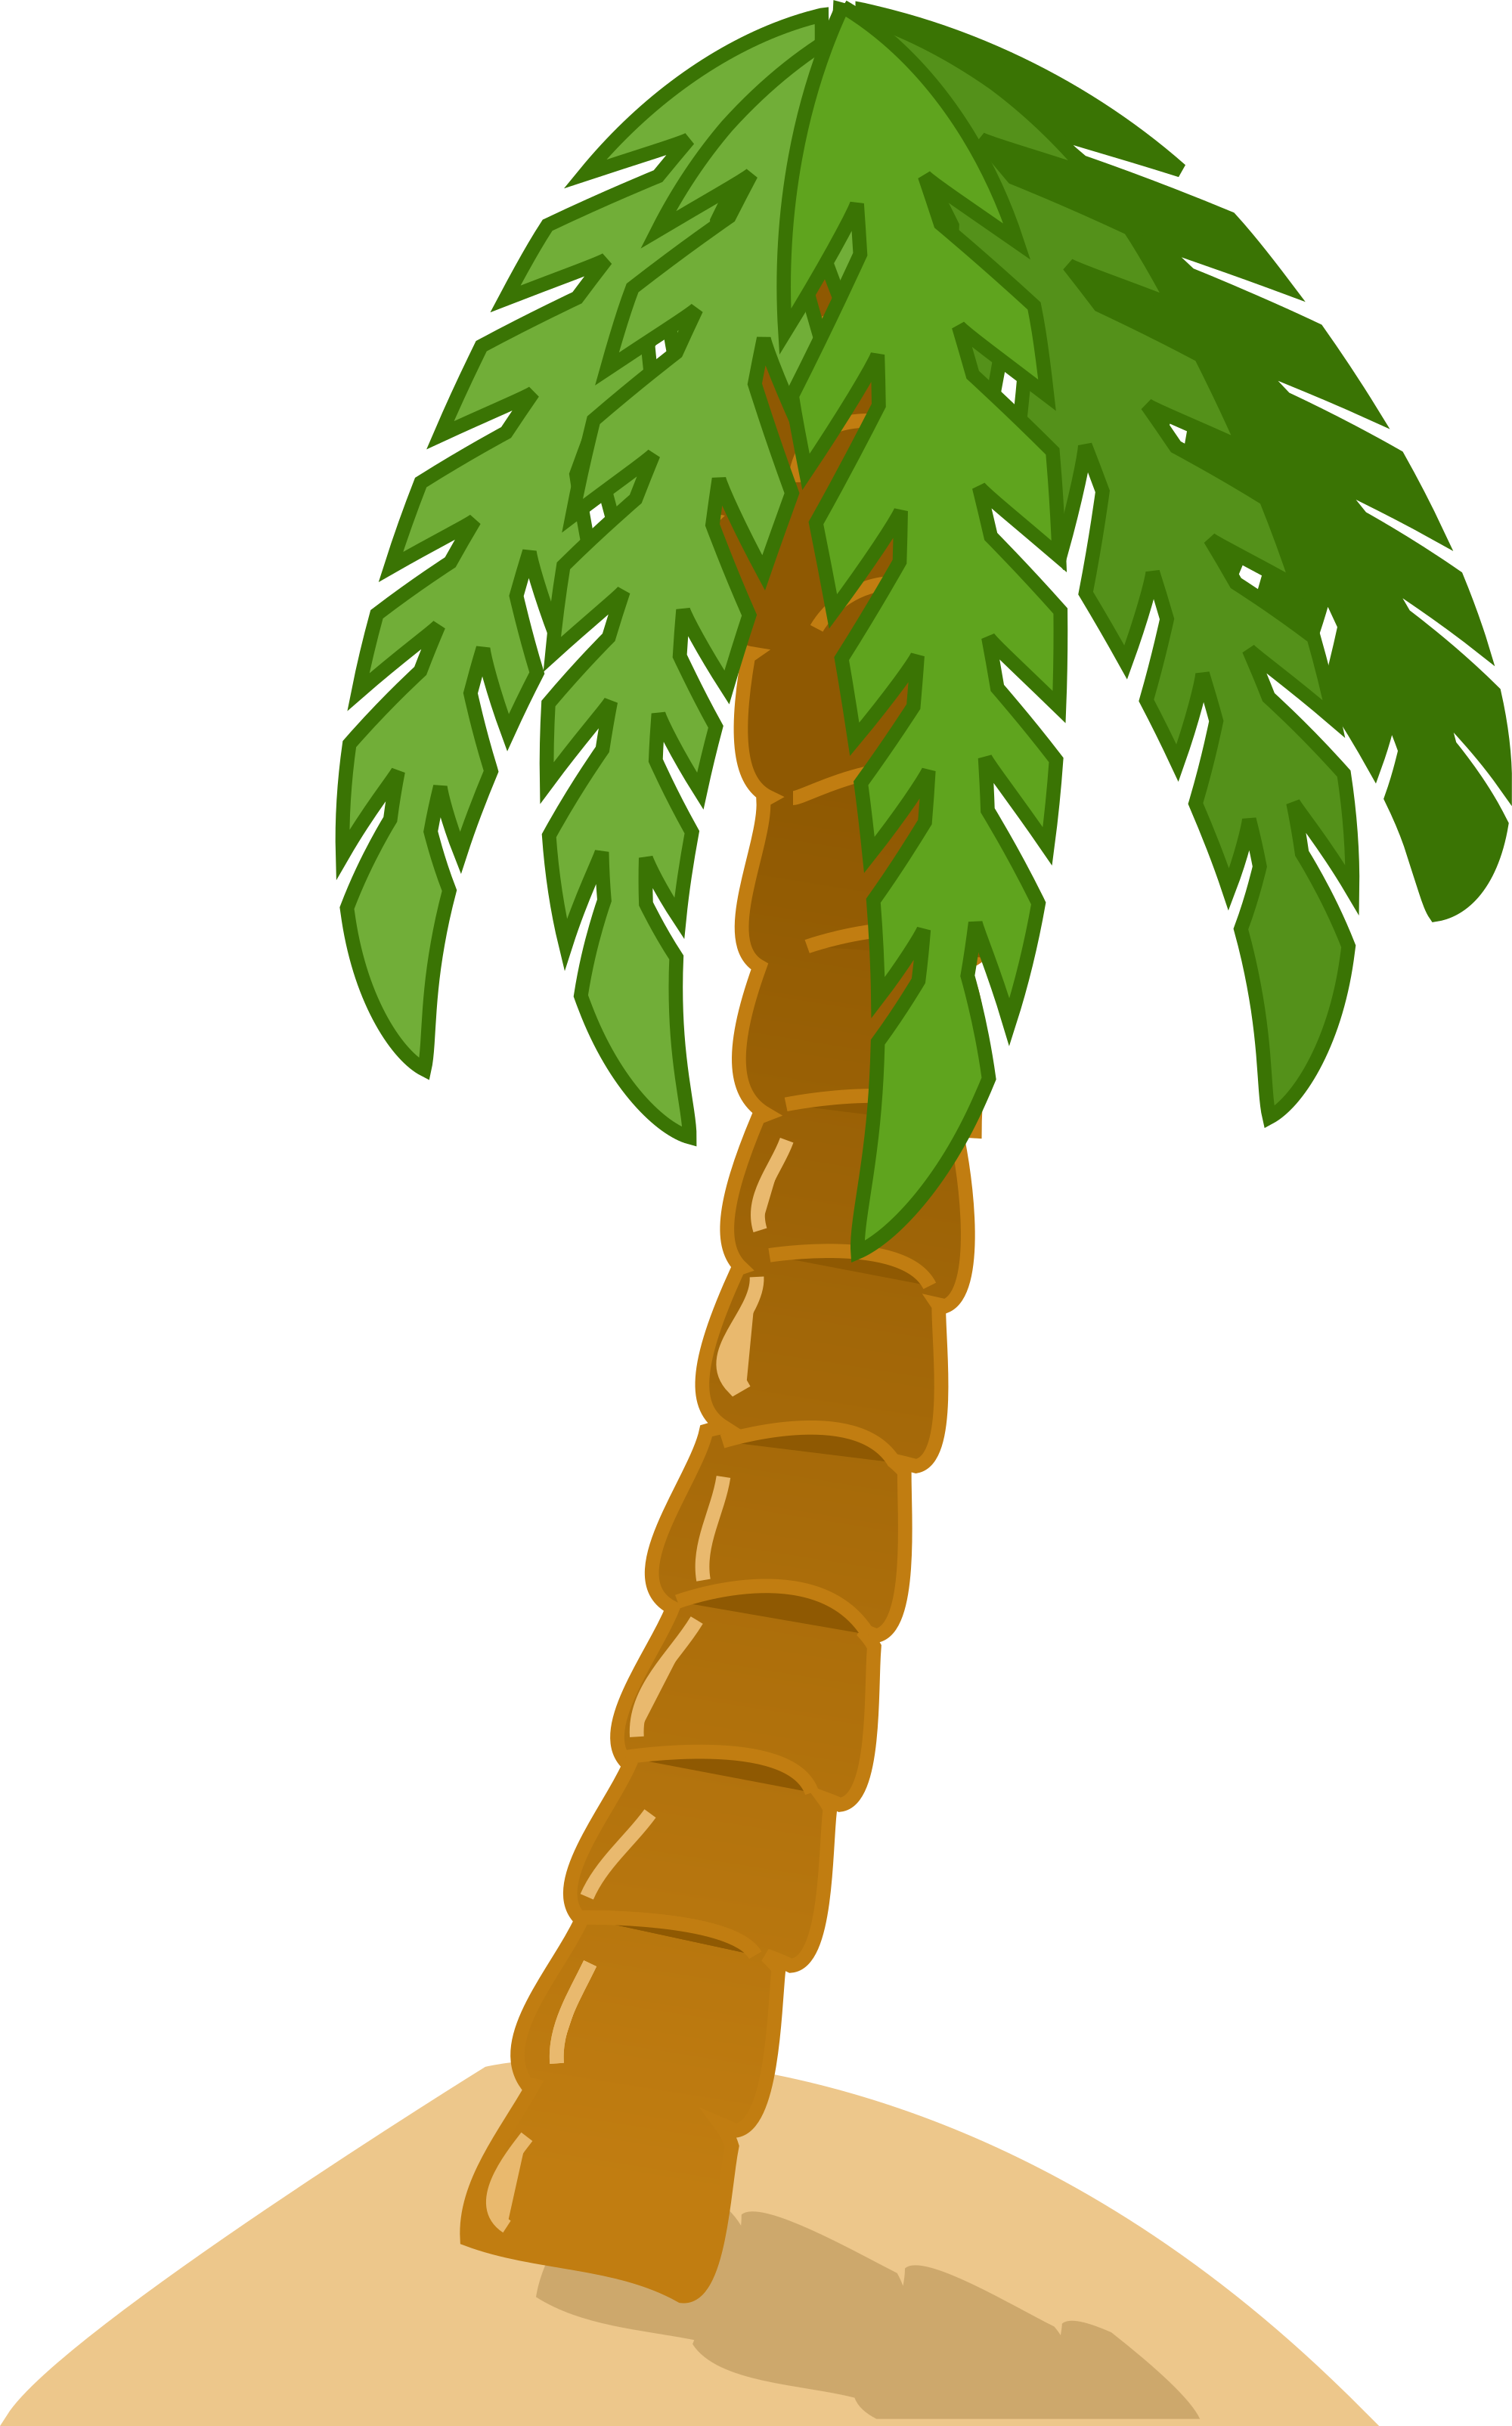 Transparent tree clipart - Family Tree Clipart Png - Dead Palm Tree Clip Art